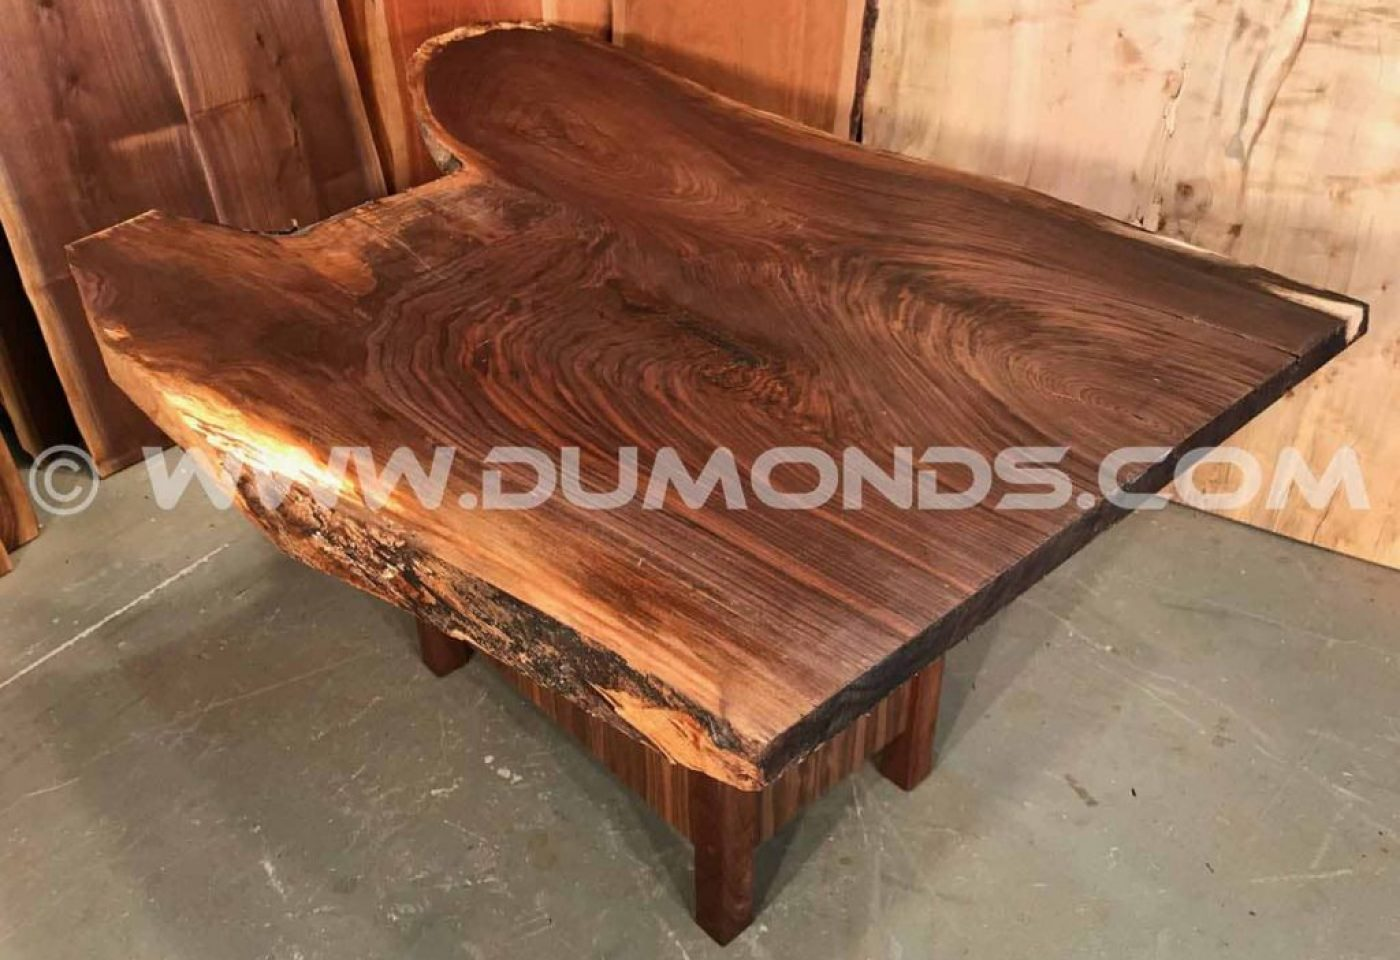 WALNUT CROTCH CURLY WALNUT TABLE WITH WALNUT BASE